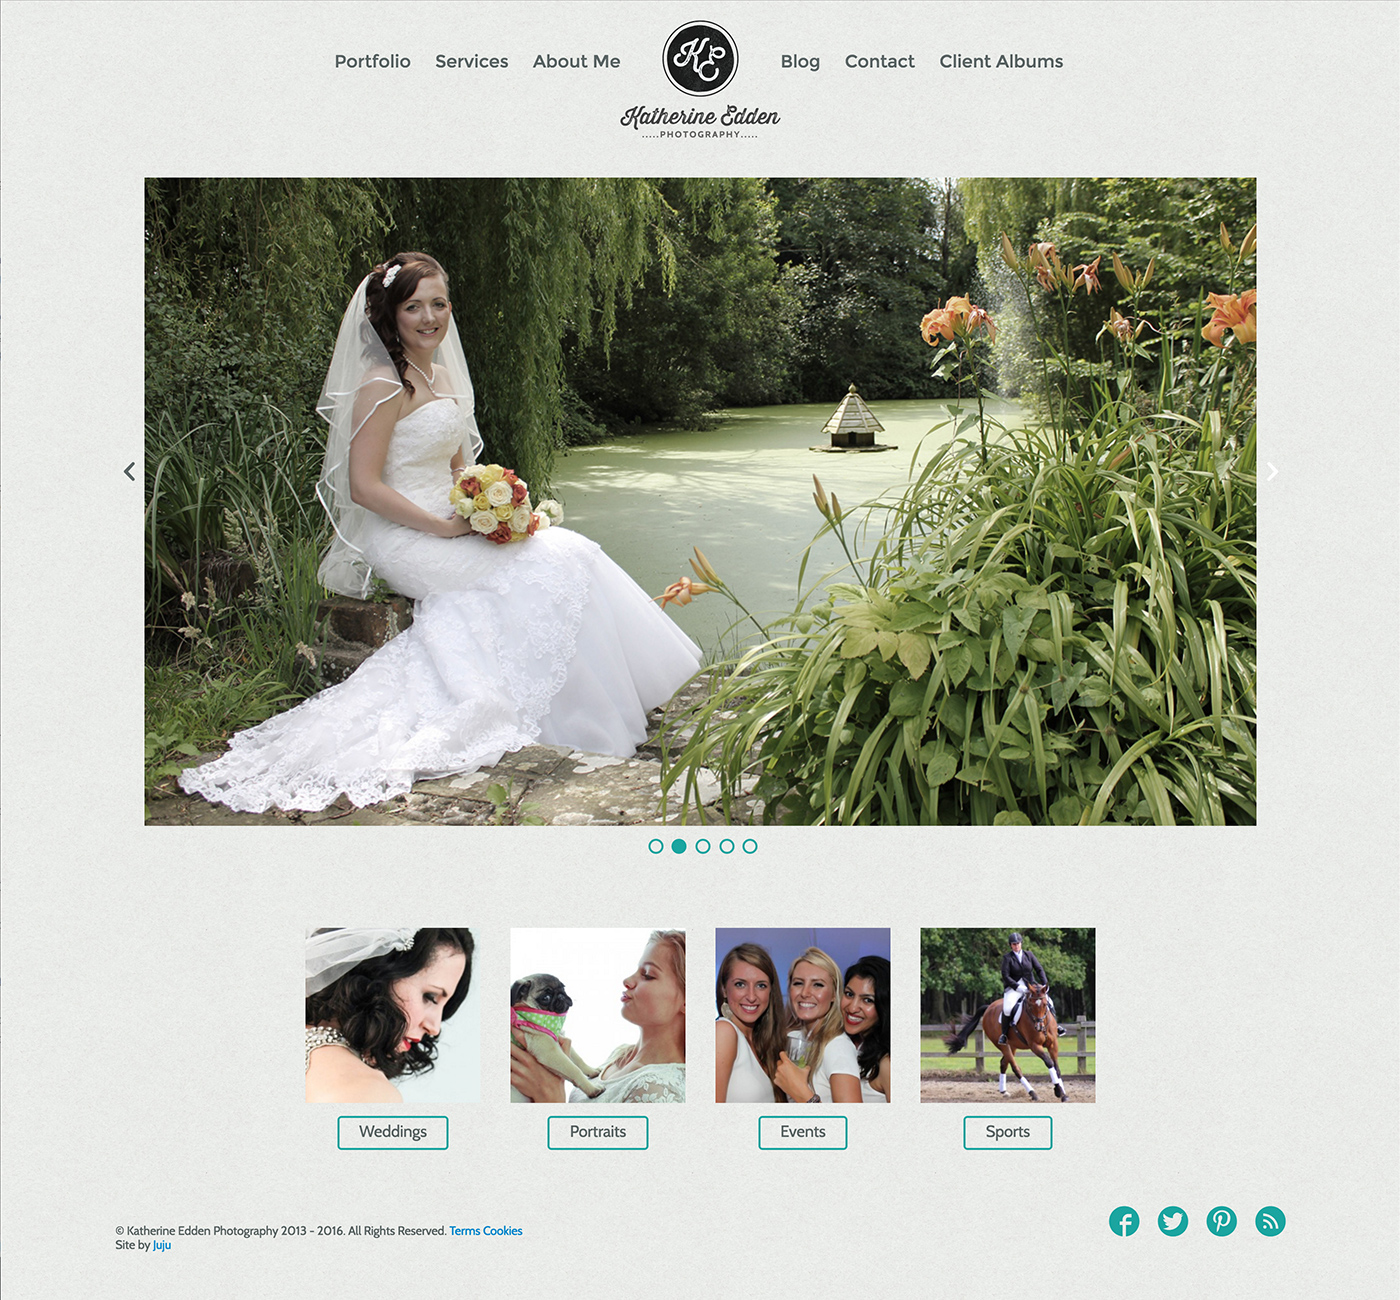 Katherine Edden website design